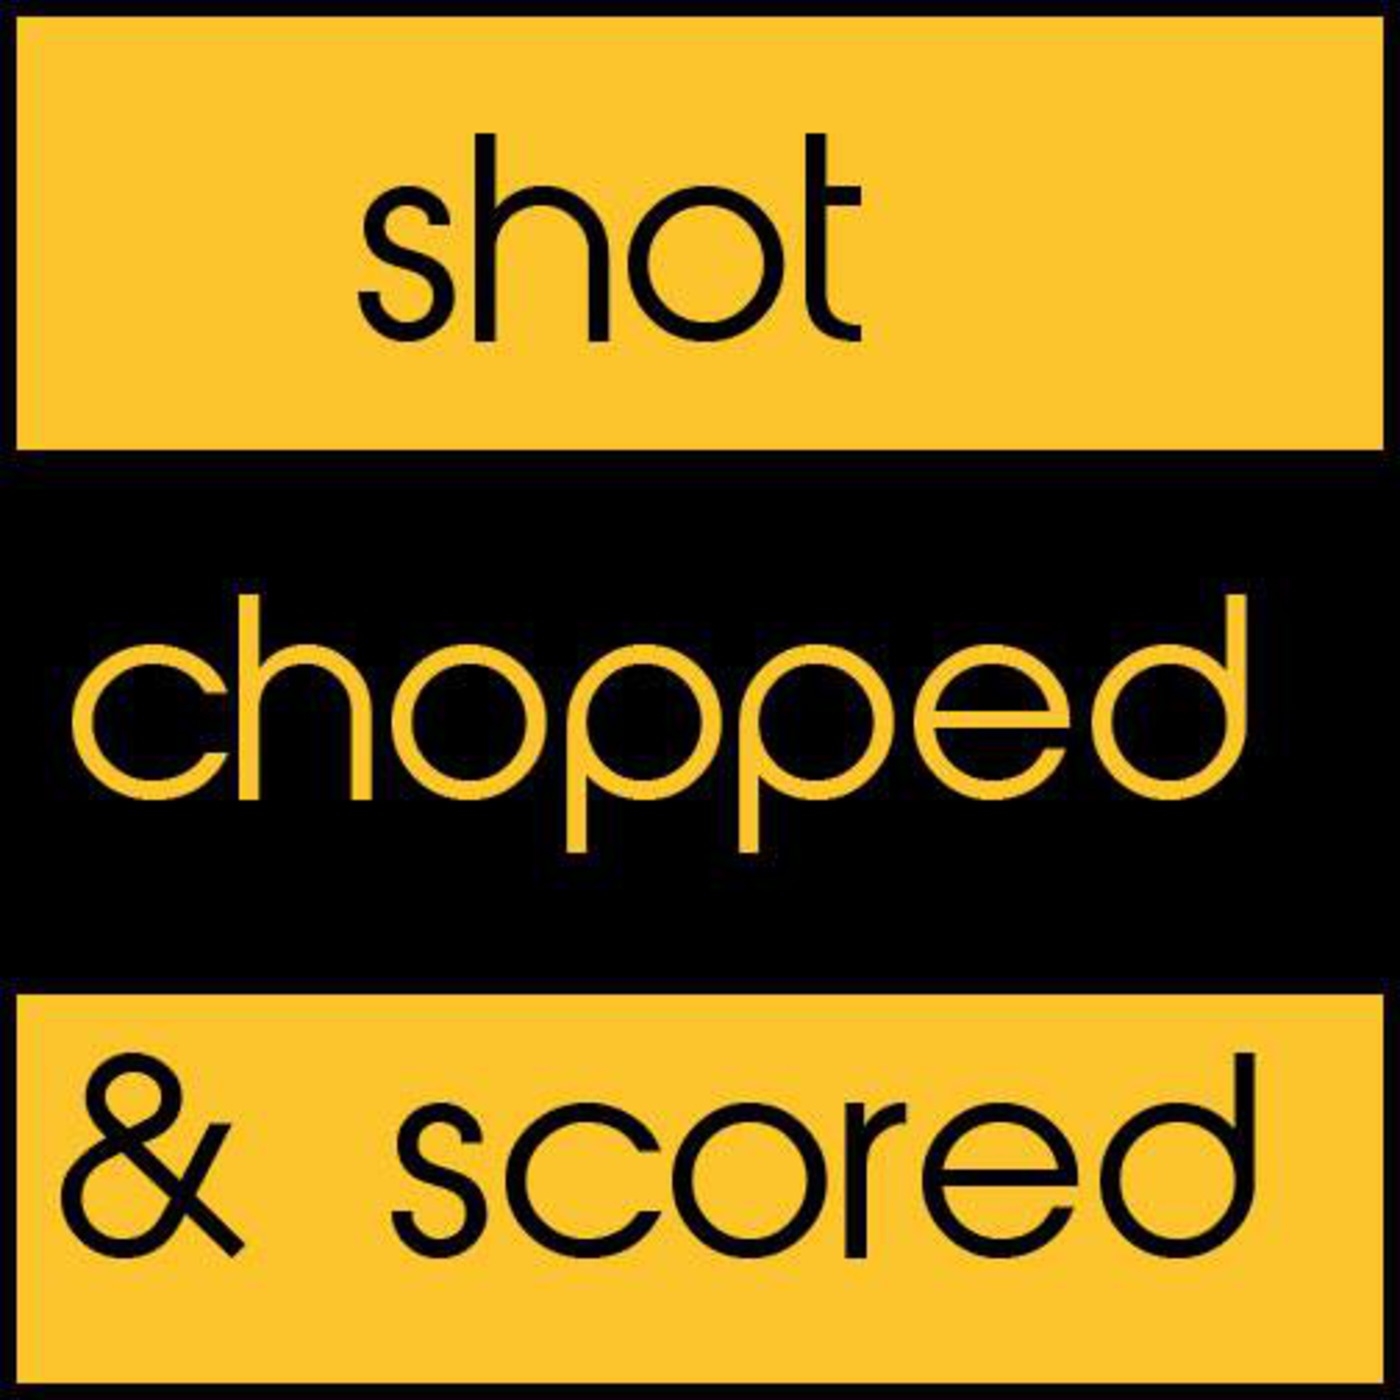 Shot, Chopped, and Scored